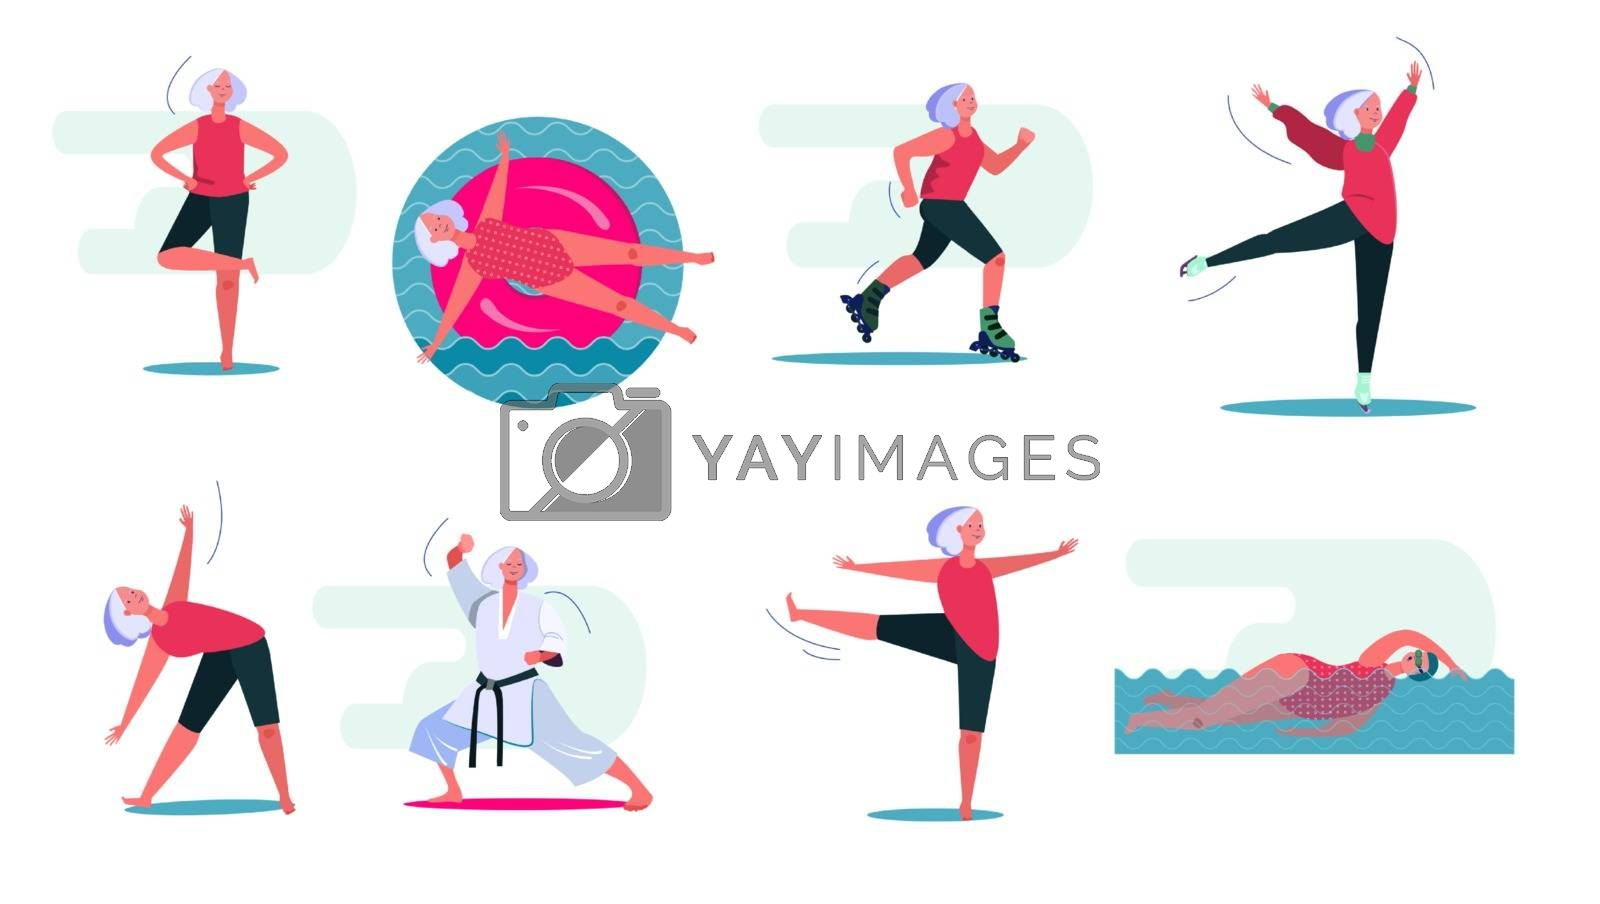 Fitness activities set. Woman swimming in pool, doing yoga, roller skating. People concept. Vector illustration for topics like leisure, movement, active lifestyle